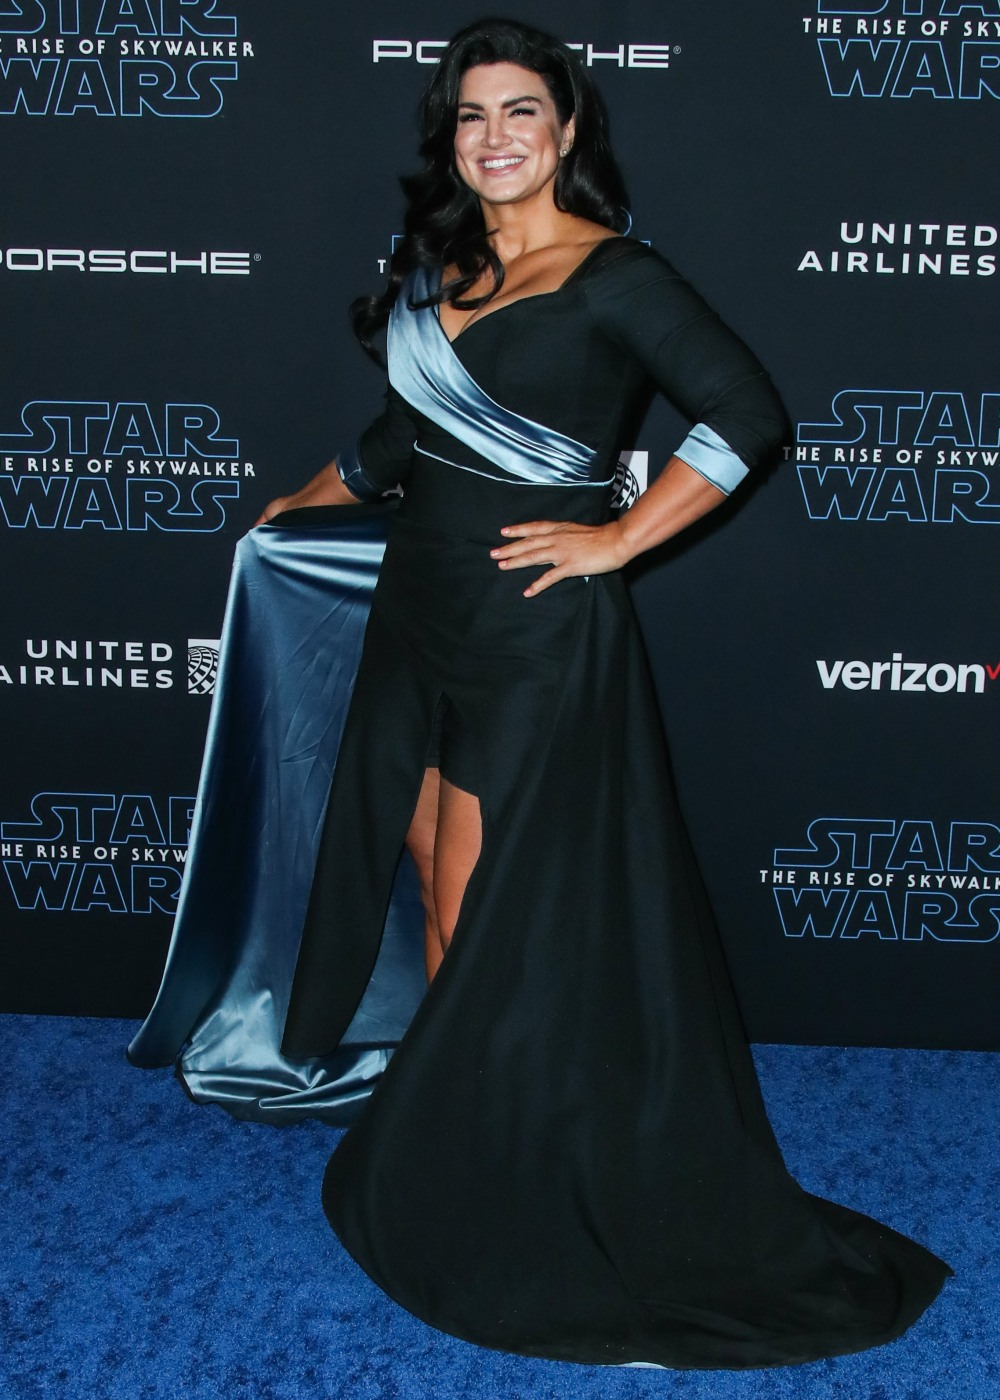 World Premiere Of Disney's 'Star Wars: The Rise Of Skywalker'